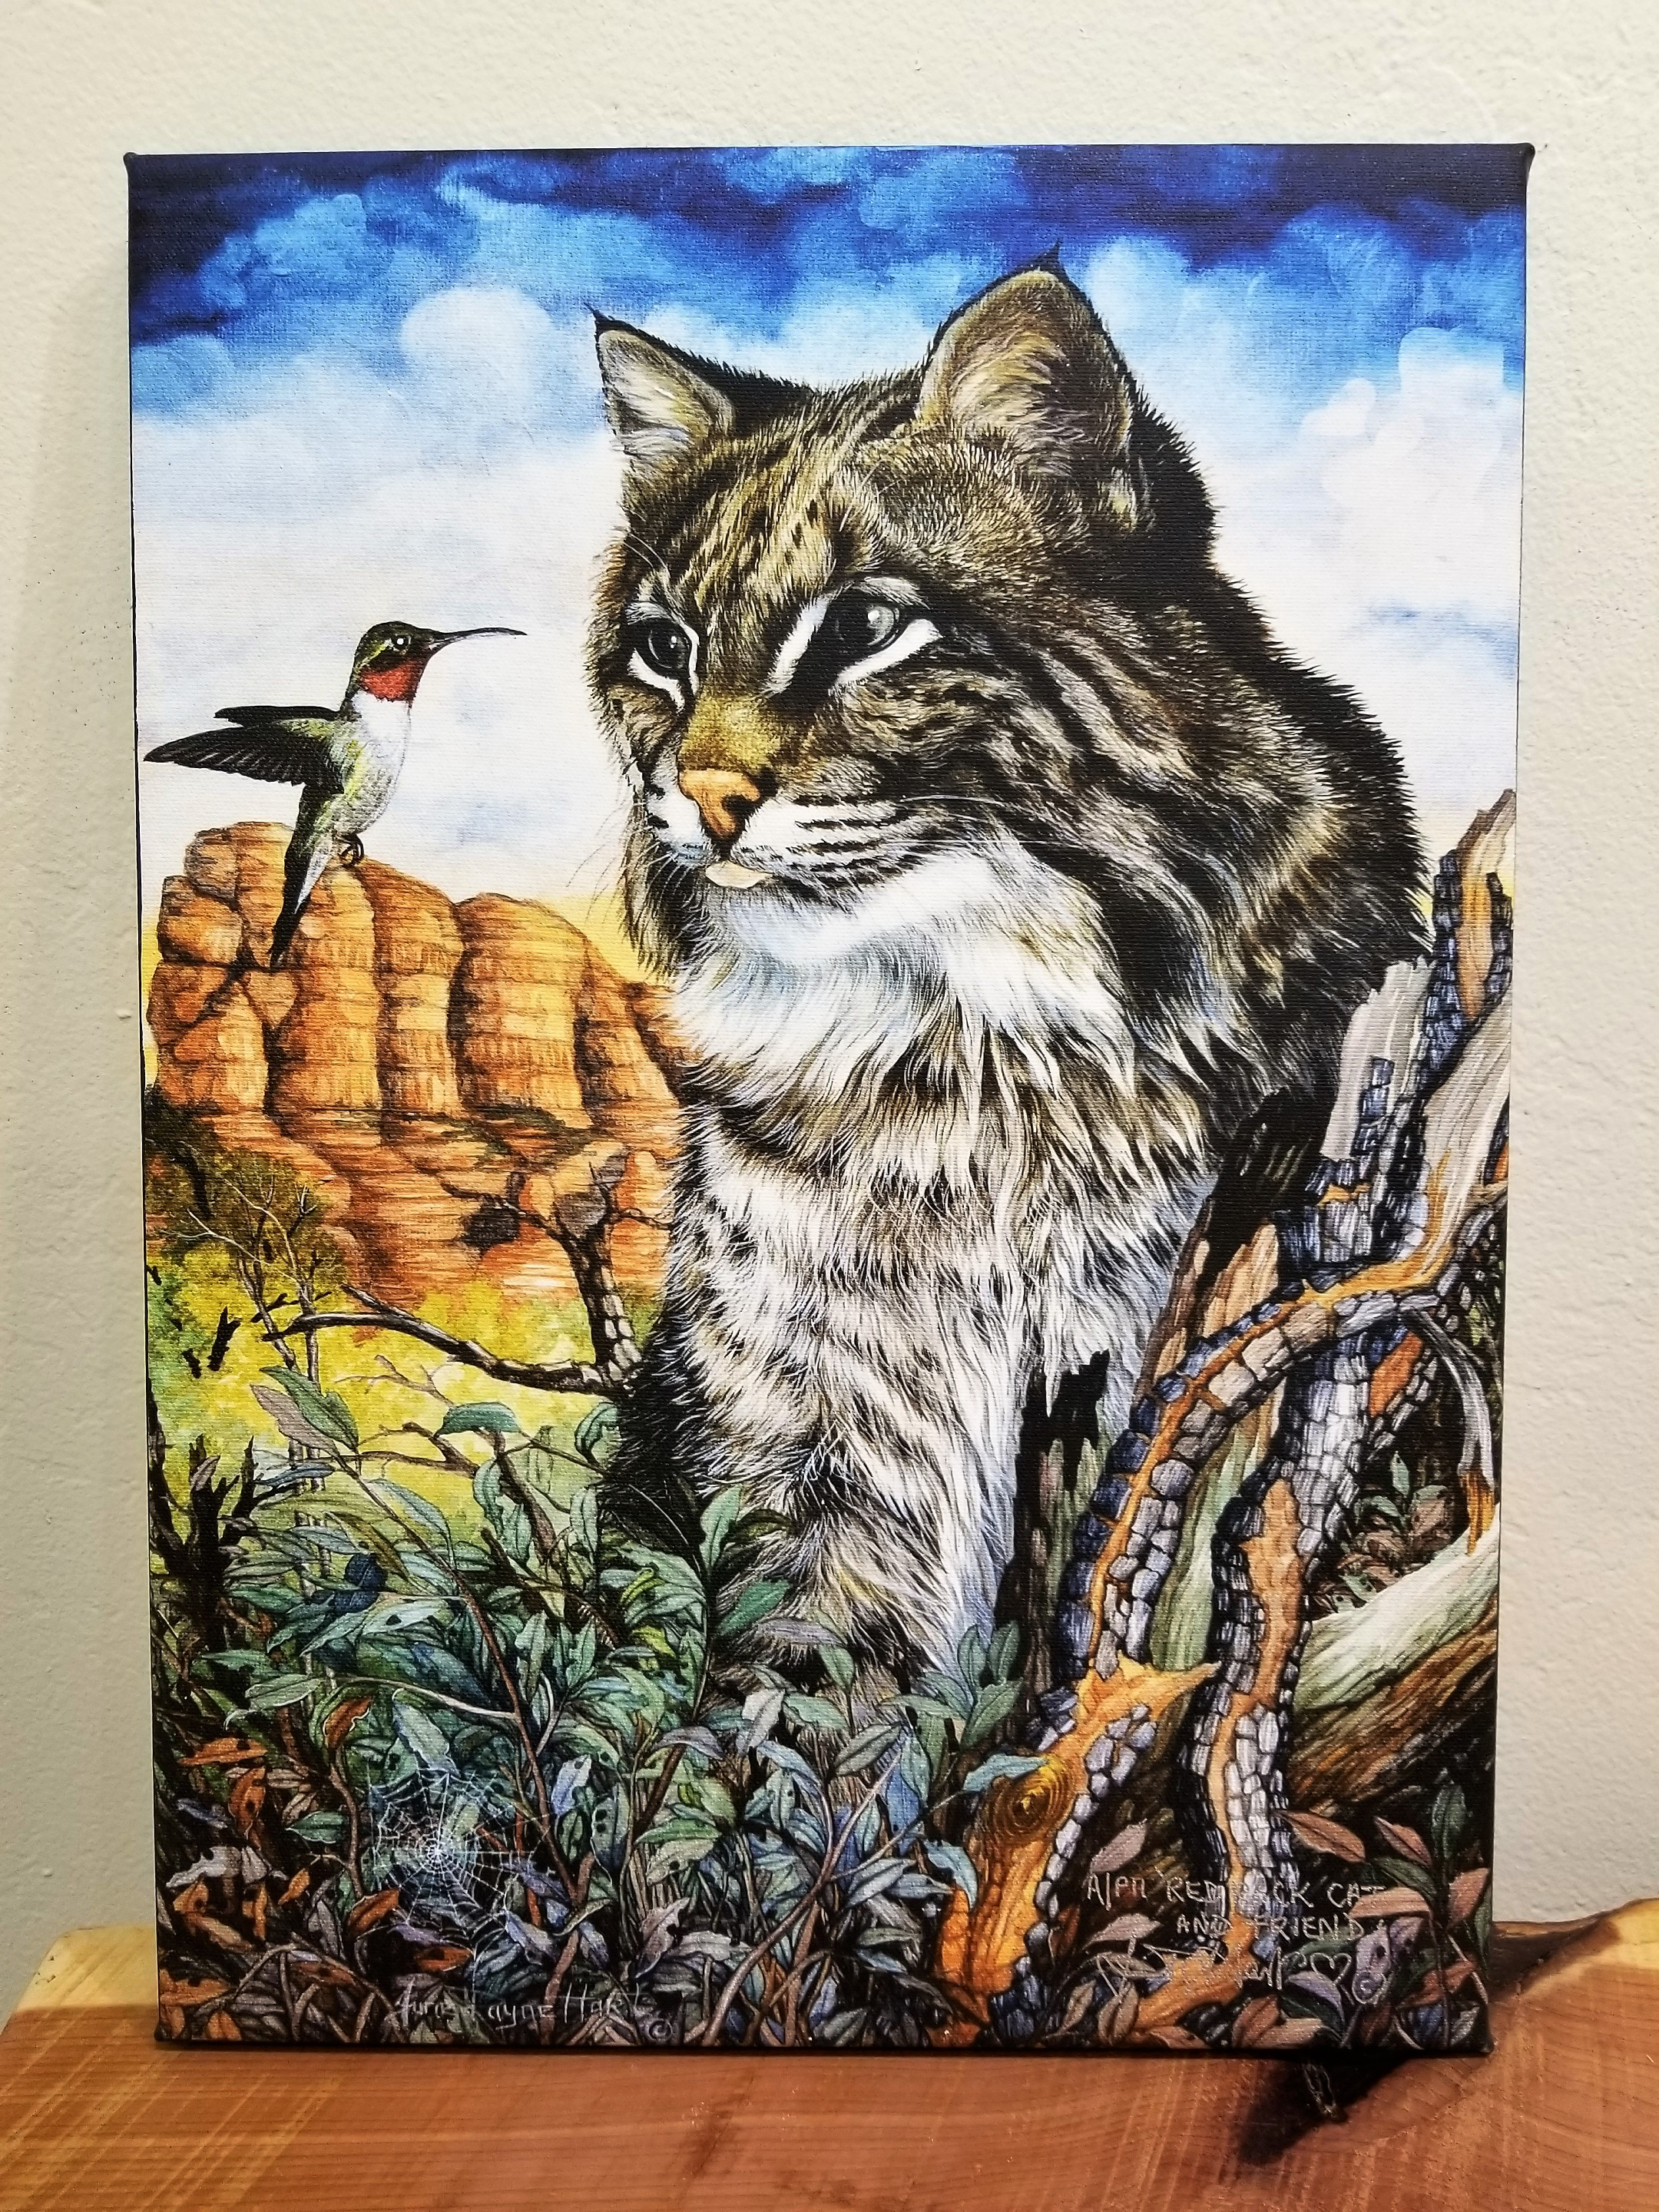 Red Rock Cat and Friend, June Payne Hart